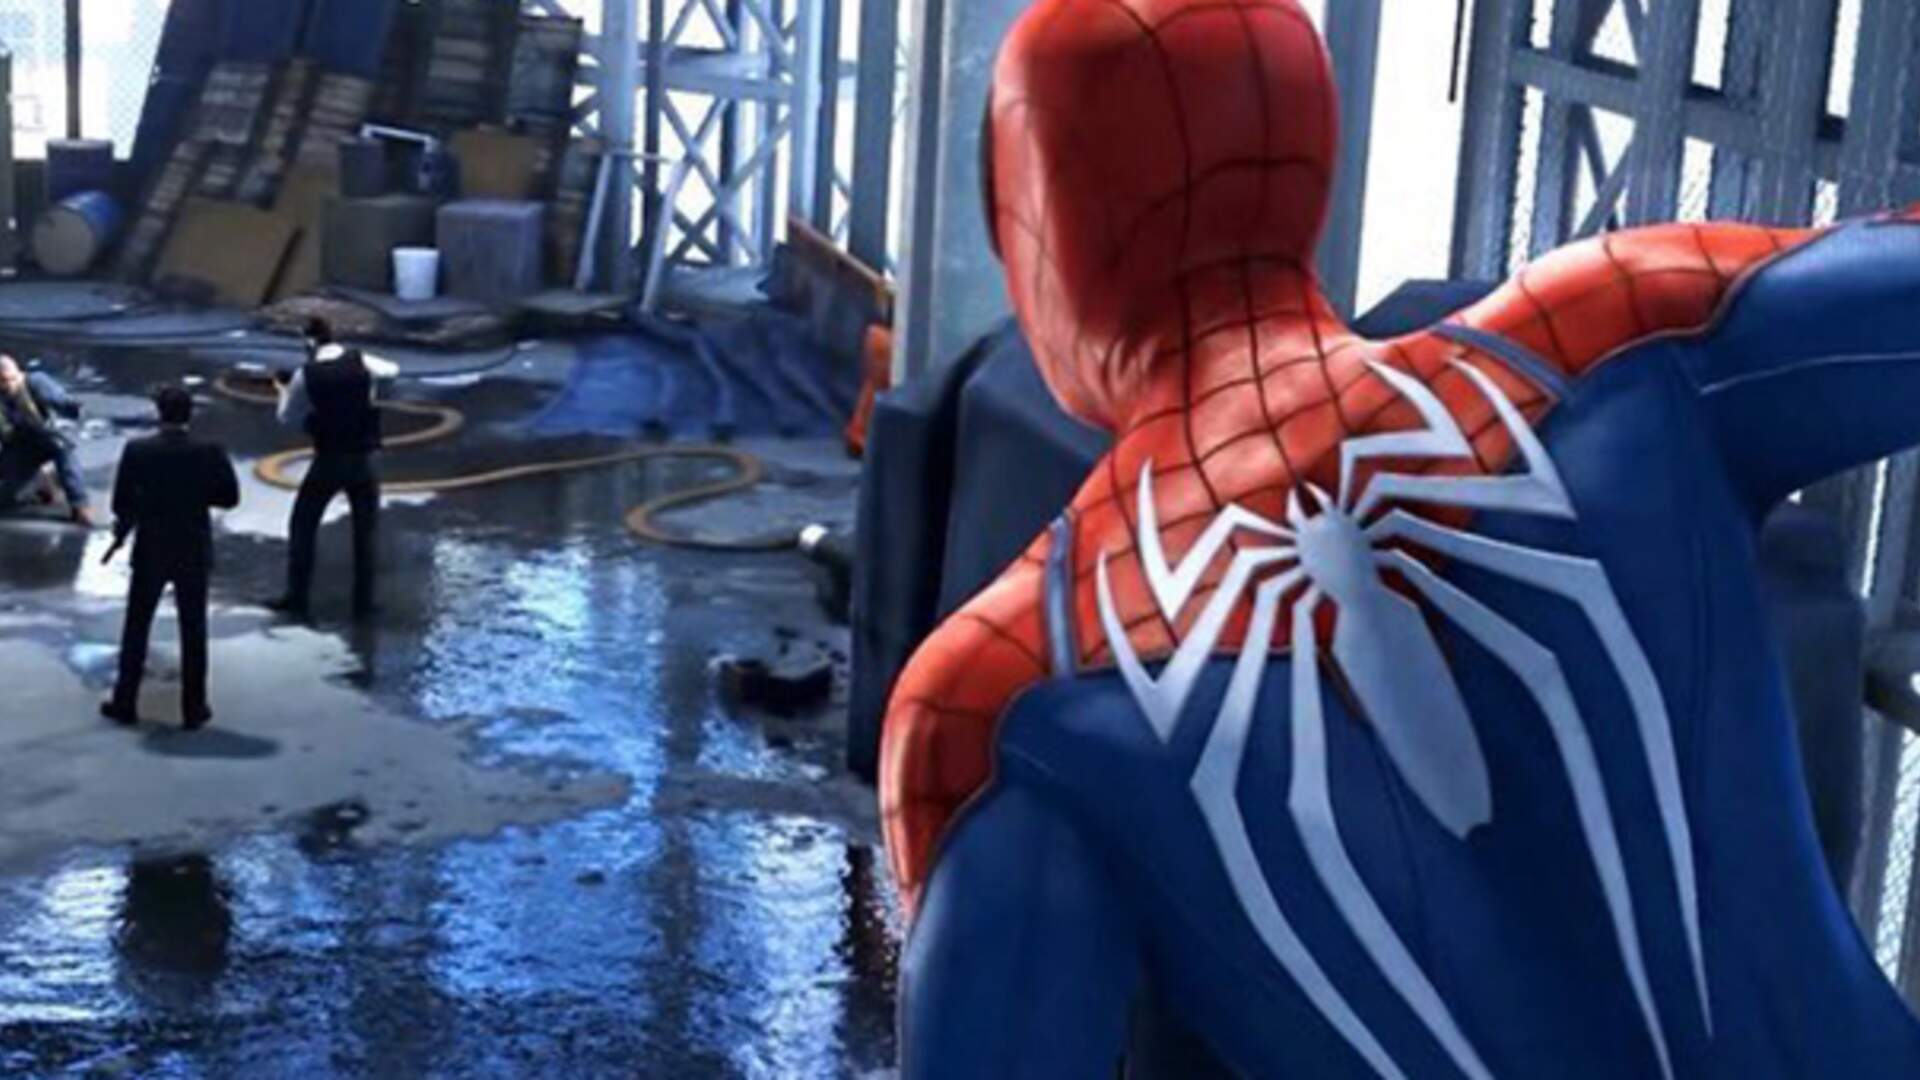 You Wanted Puddles, Spider-Man PS4 Just Gave You All the Puddles